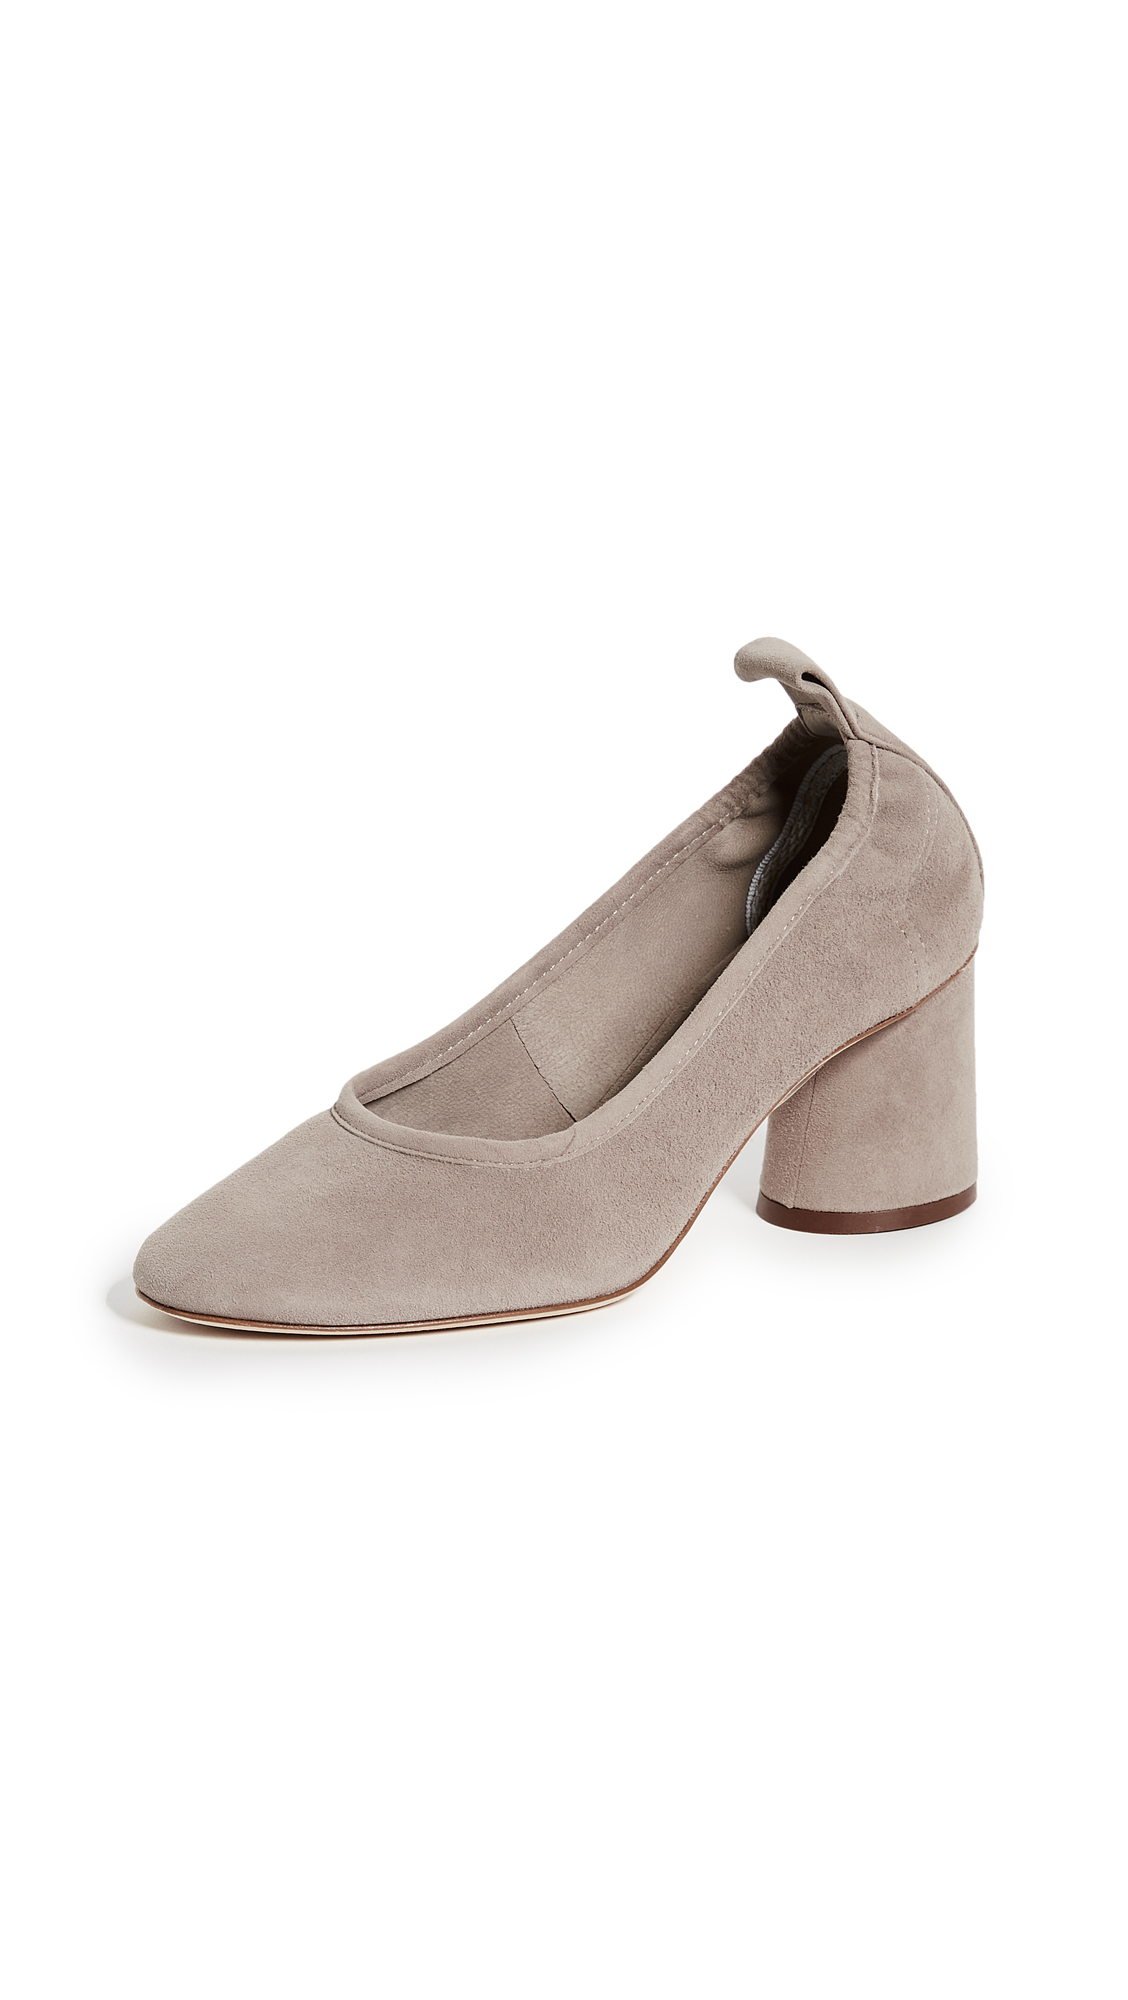 Tory Burch Therese 65mm Suede Pumps - Dust Storm